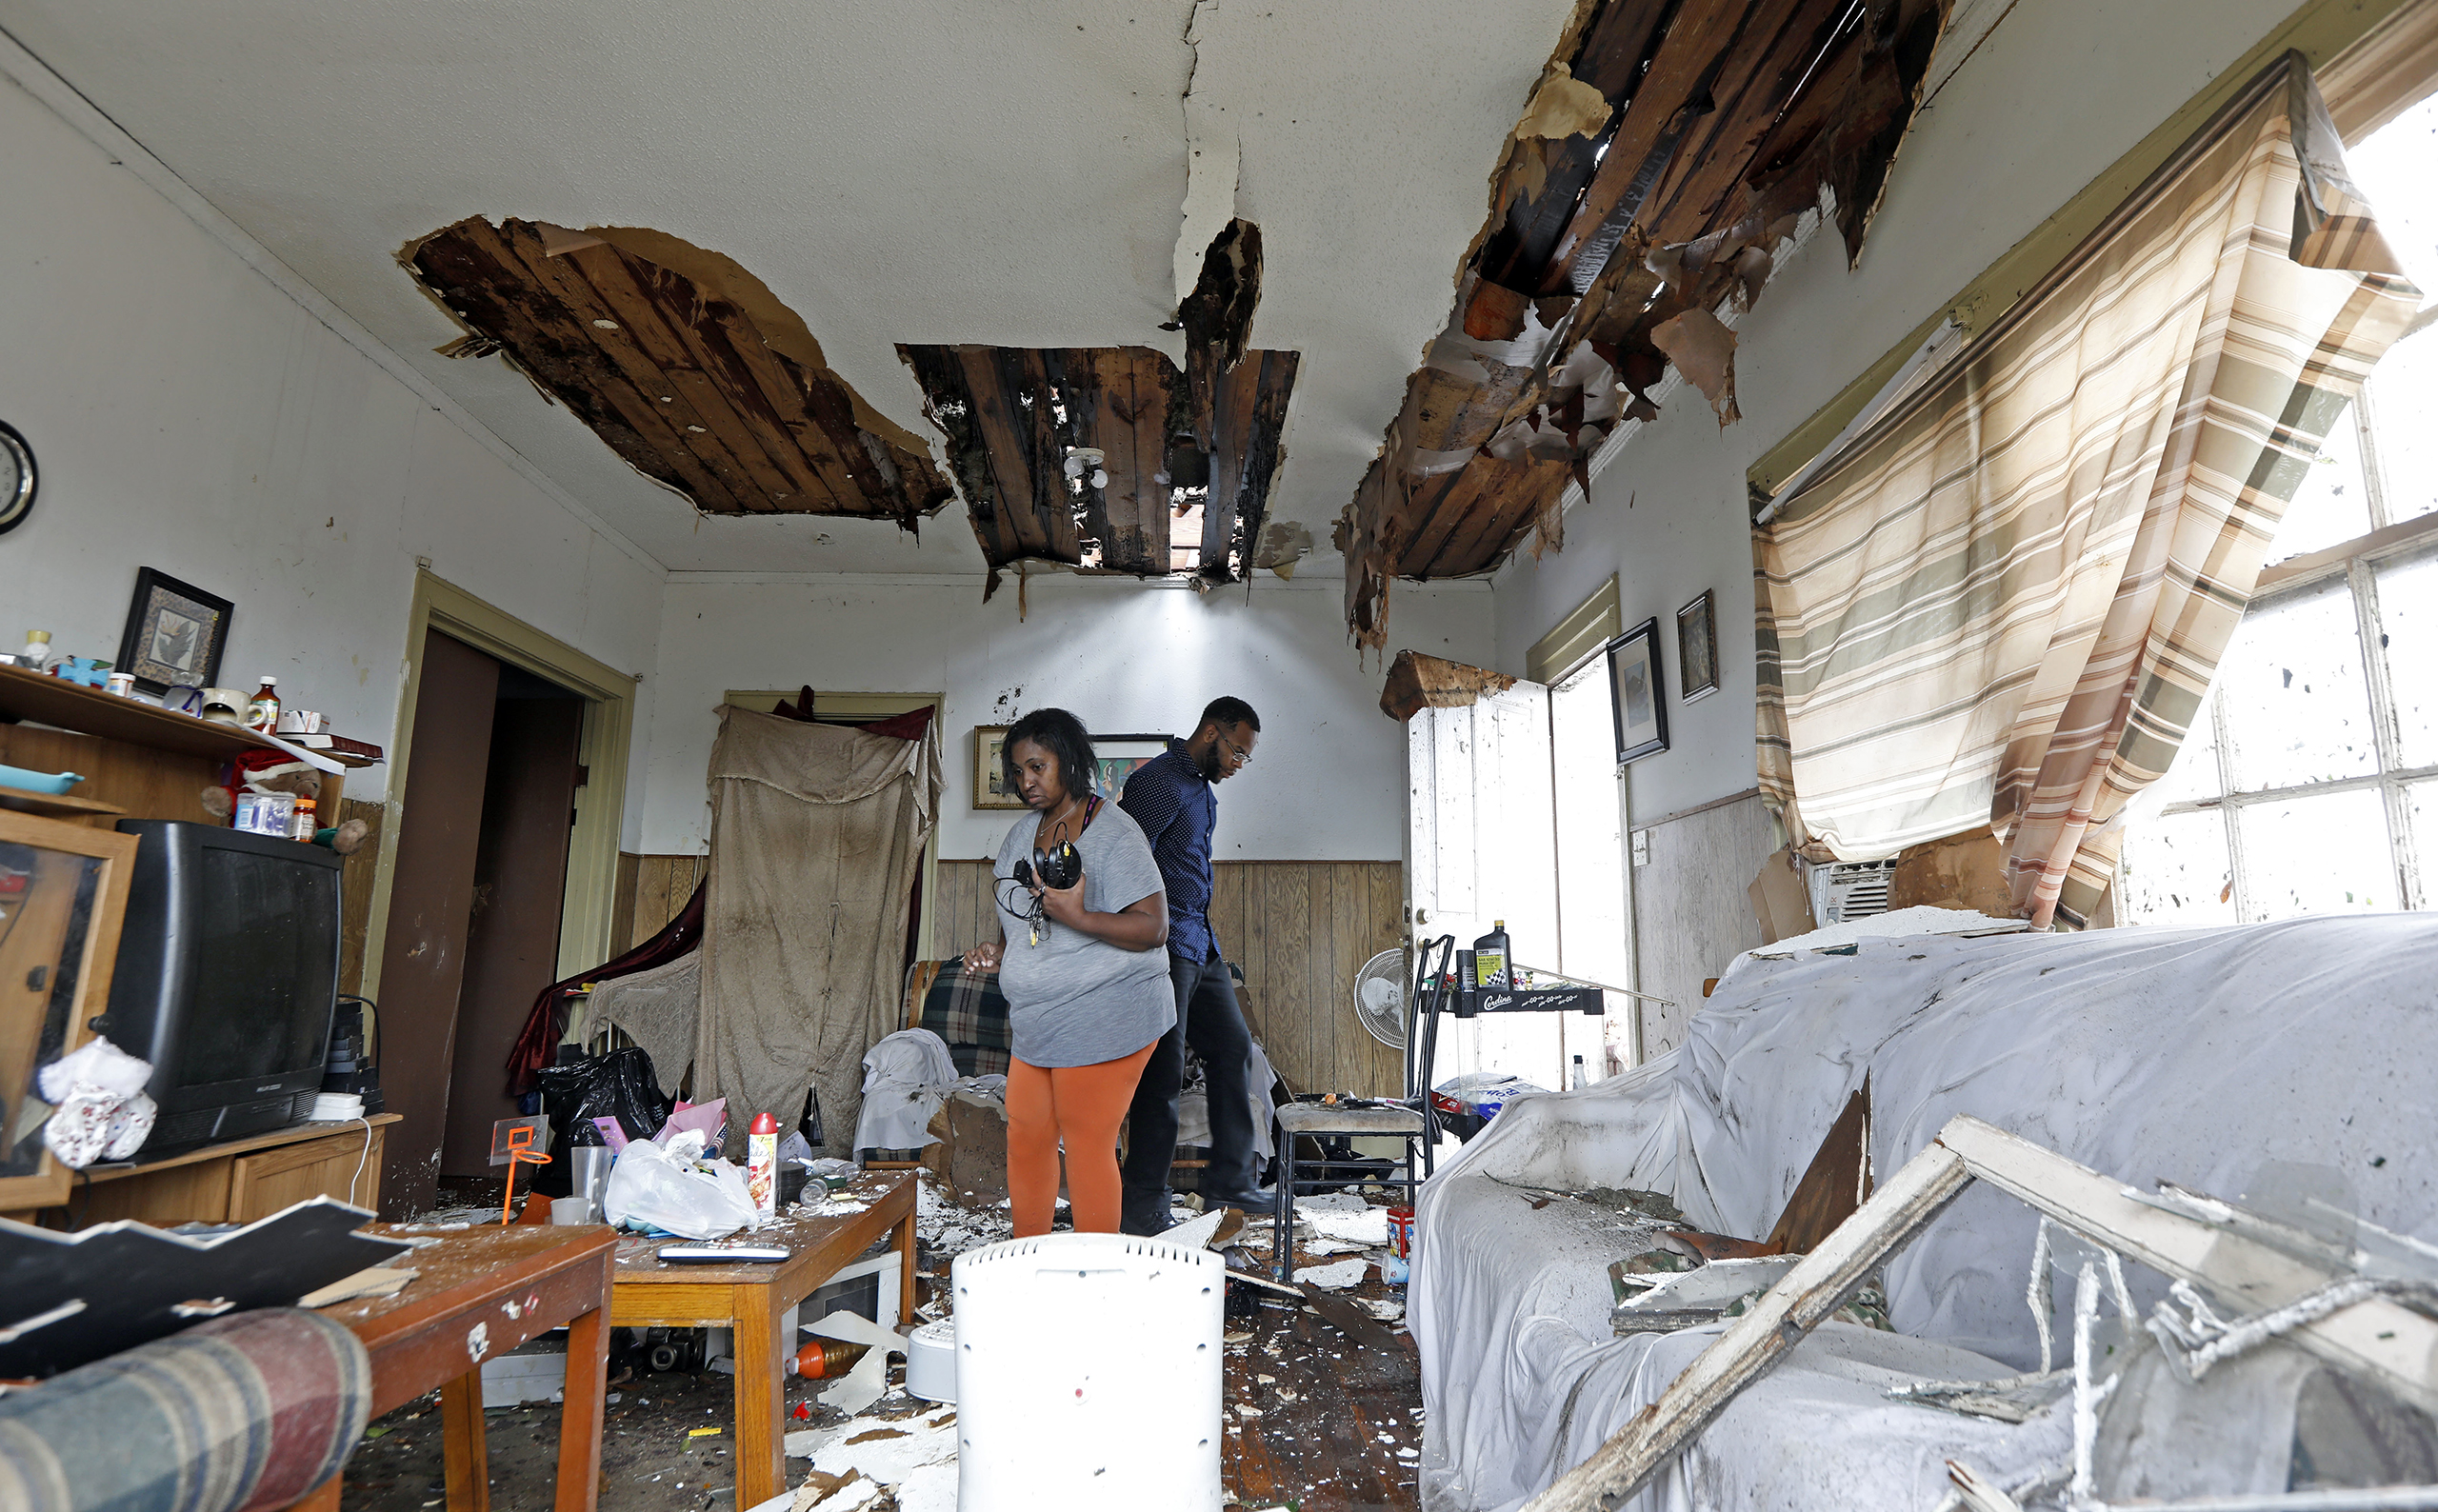 Donna Thompson, and a friend, salvage some of her possessions on Jan. 21, 2017, after a morning tornado ripped her roof off in Hattiesburg, Miss.